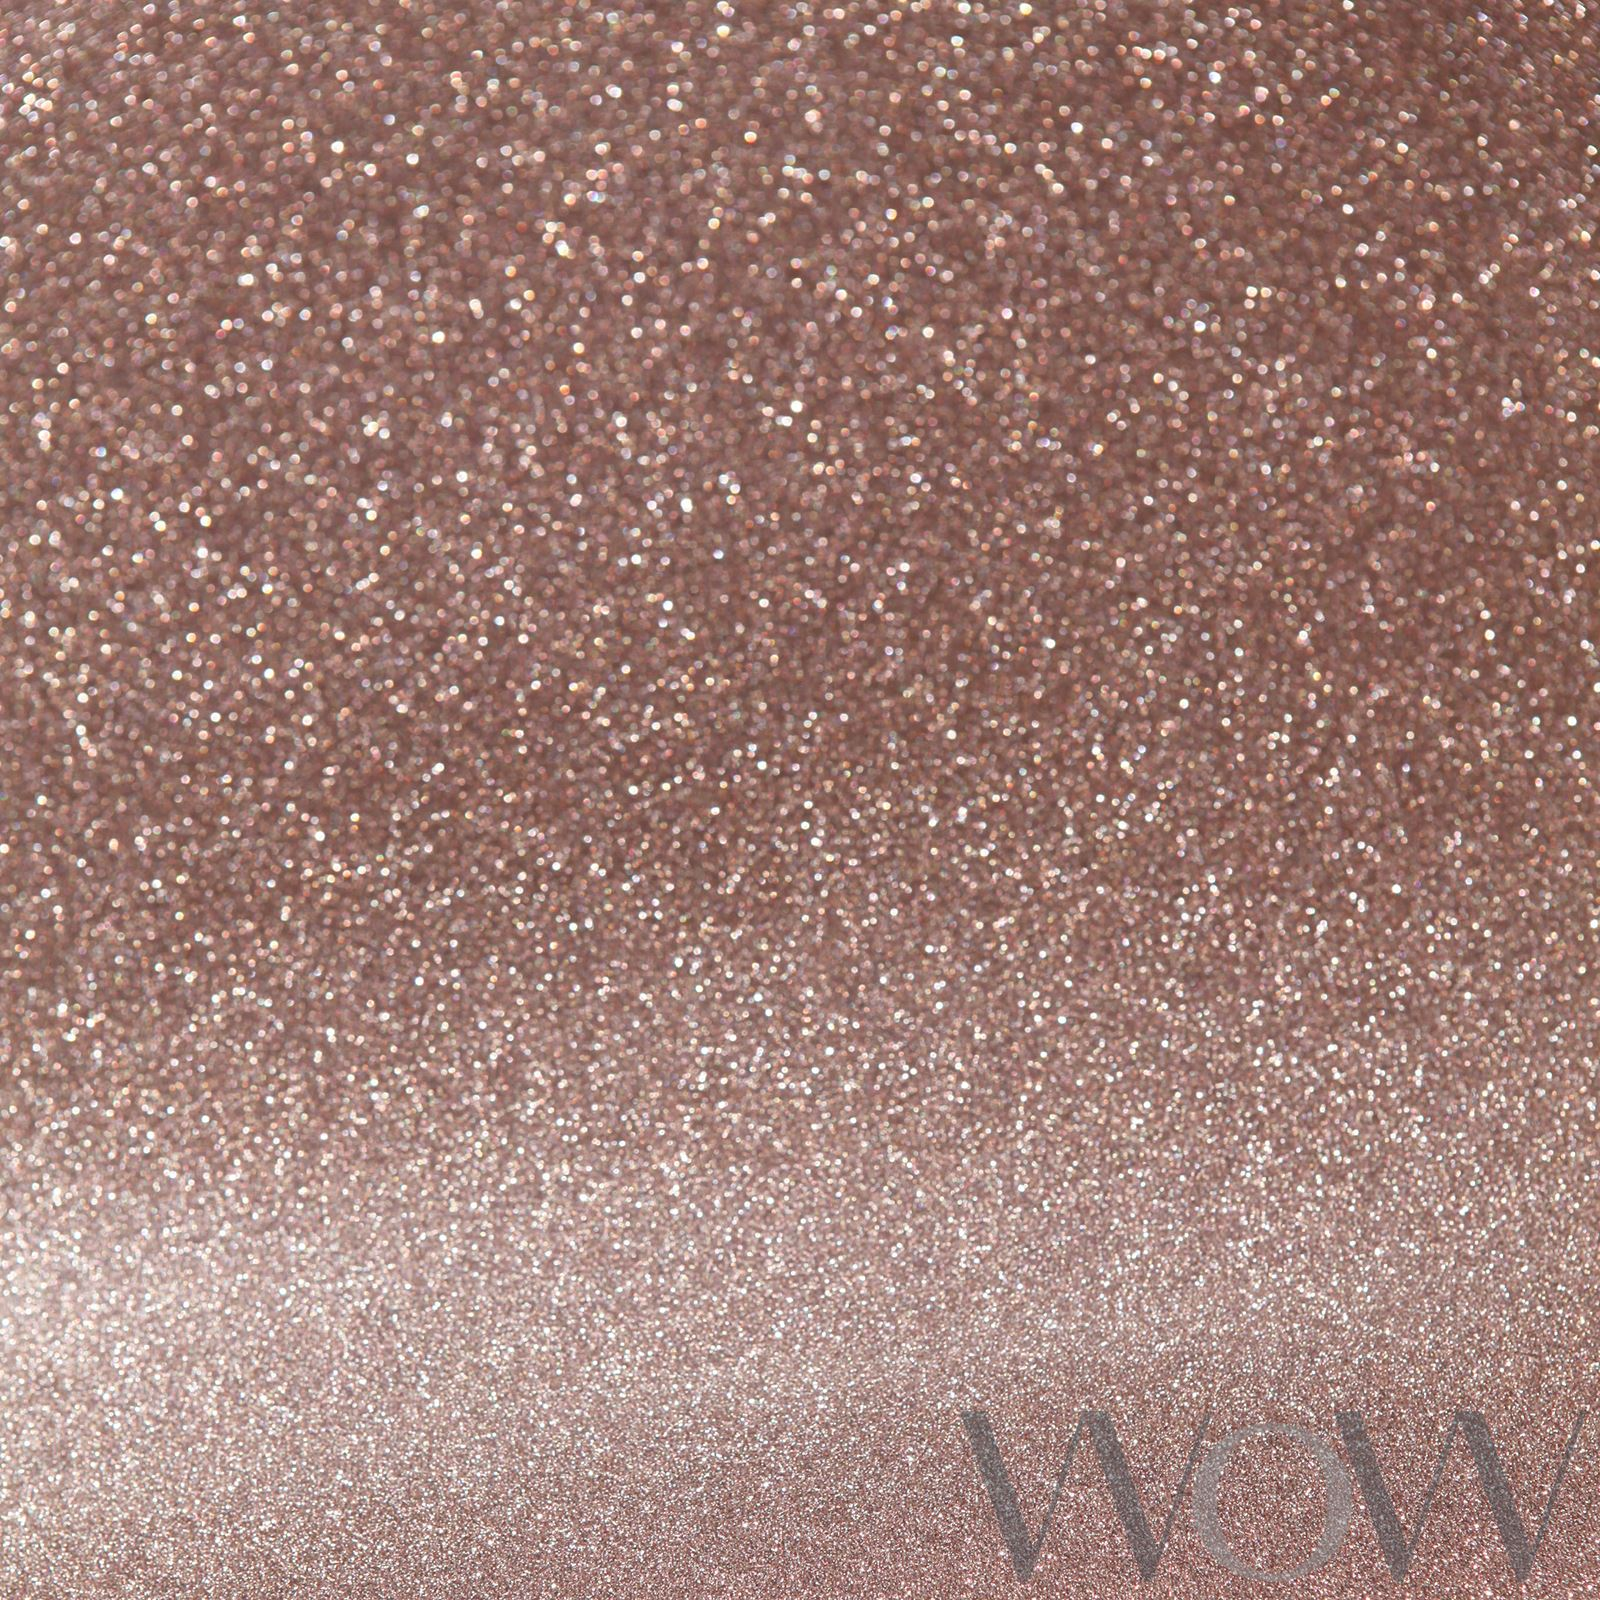 luxe glitter sparkle wallpaper sapphire pink rose gold silver wallpaper paste ebay. Black Bedroom Furniture Sets. Home Design Ideas